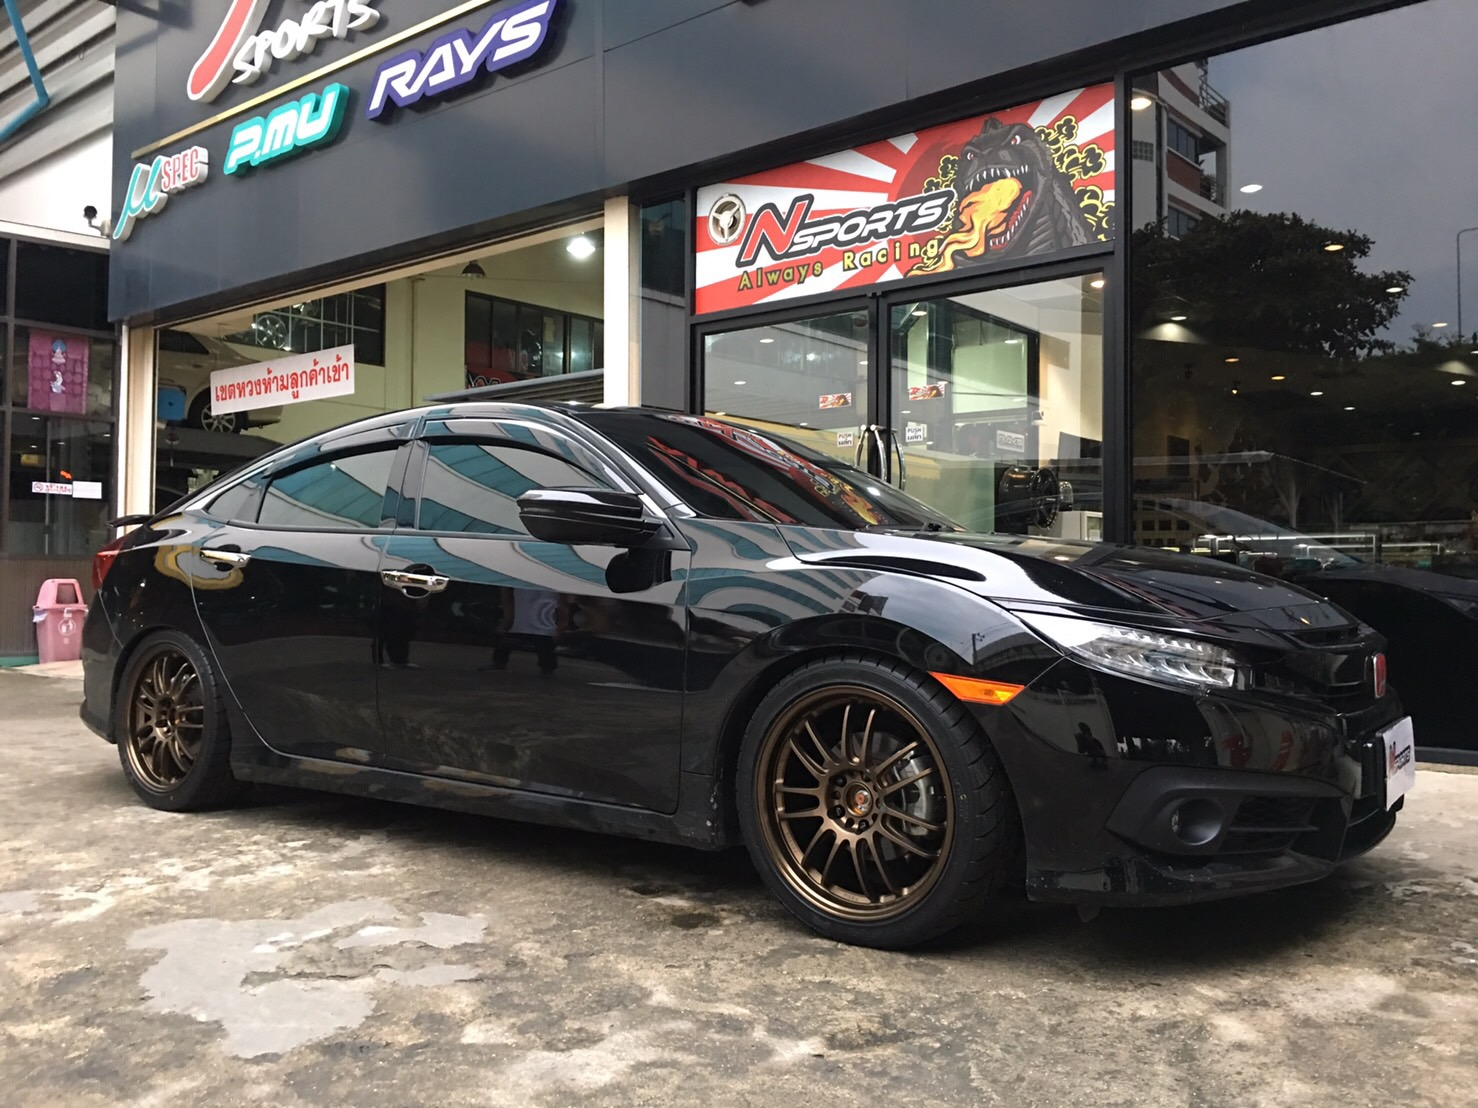 Civic FC + Rays RE30 18*8.5+40 5-114.3